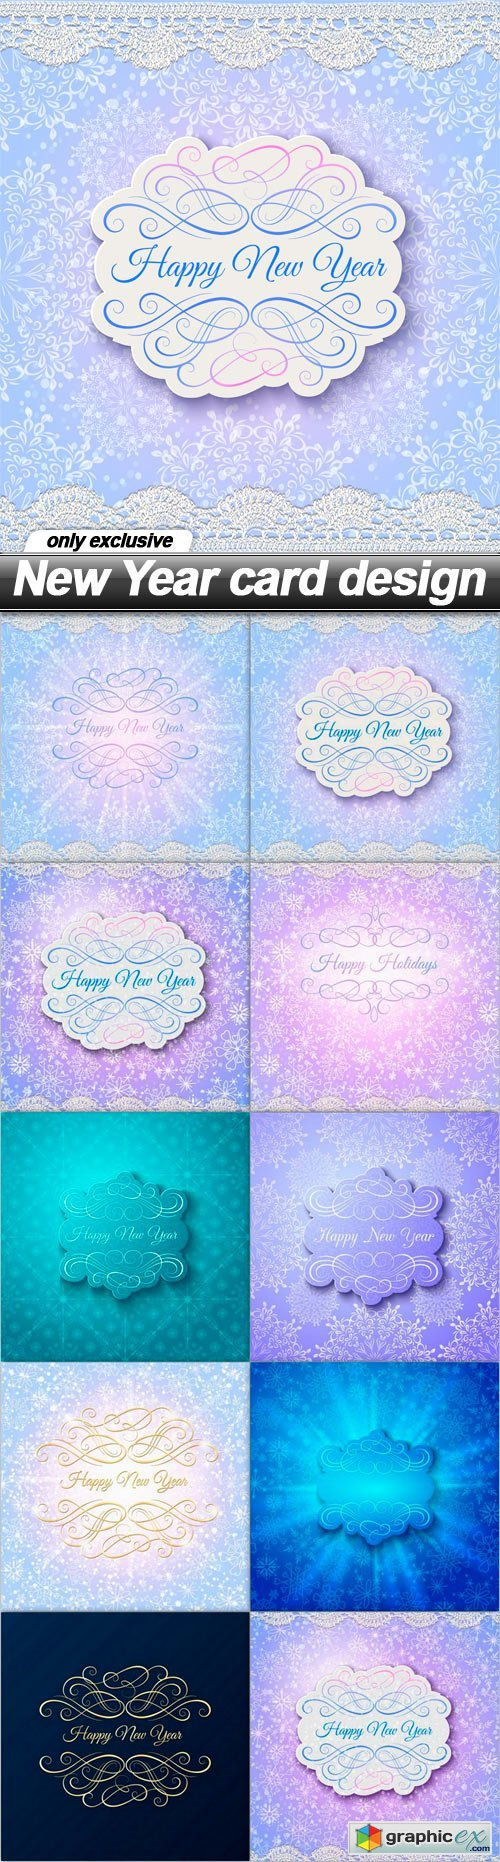 New Year card design - 10 EPS